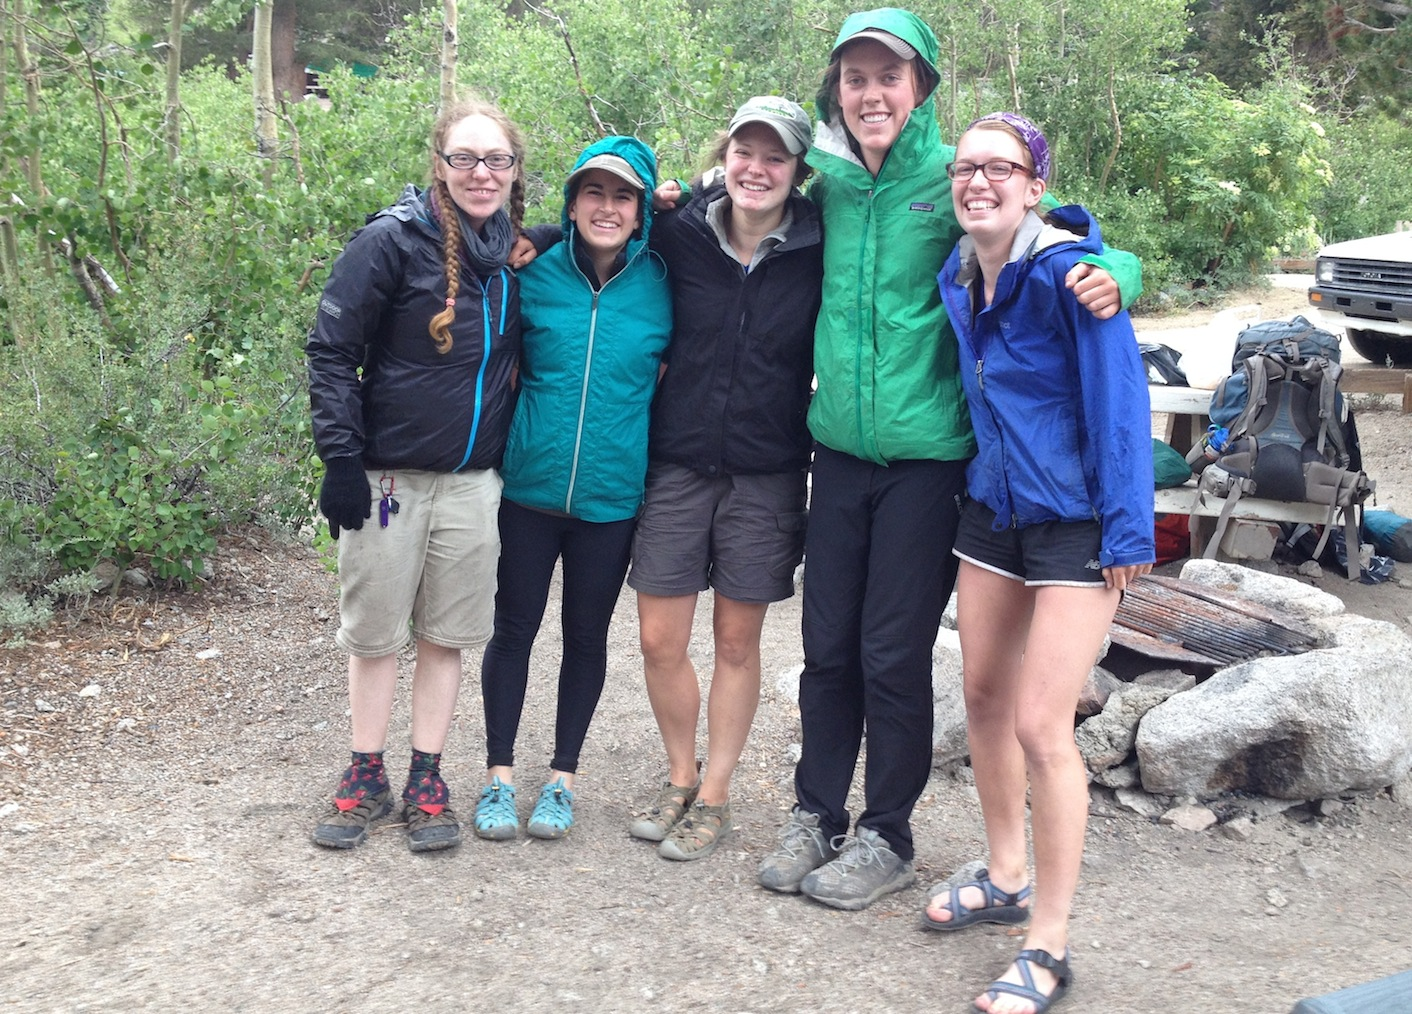 Ruby has a joyful if rainy reunion with the Hamilton College gang at the Onion Valley campground.